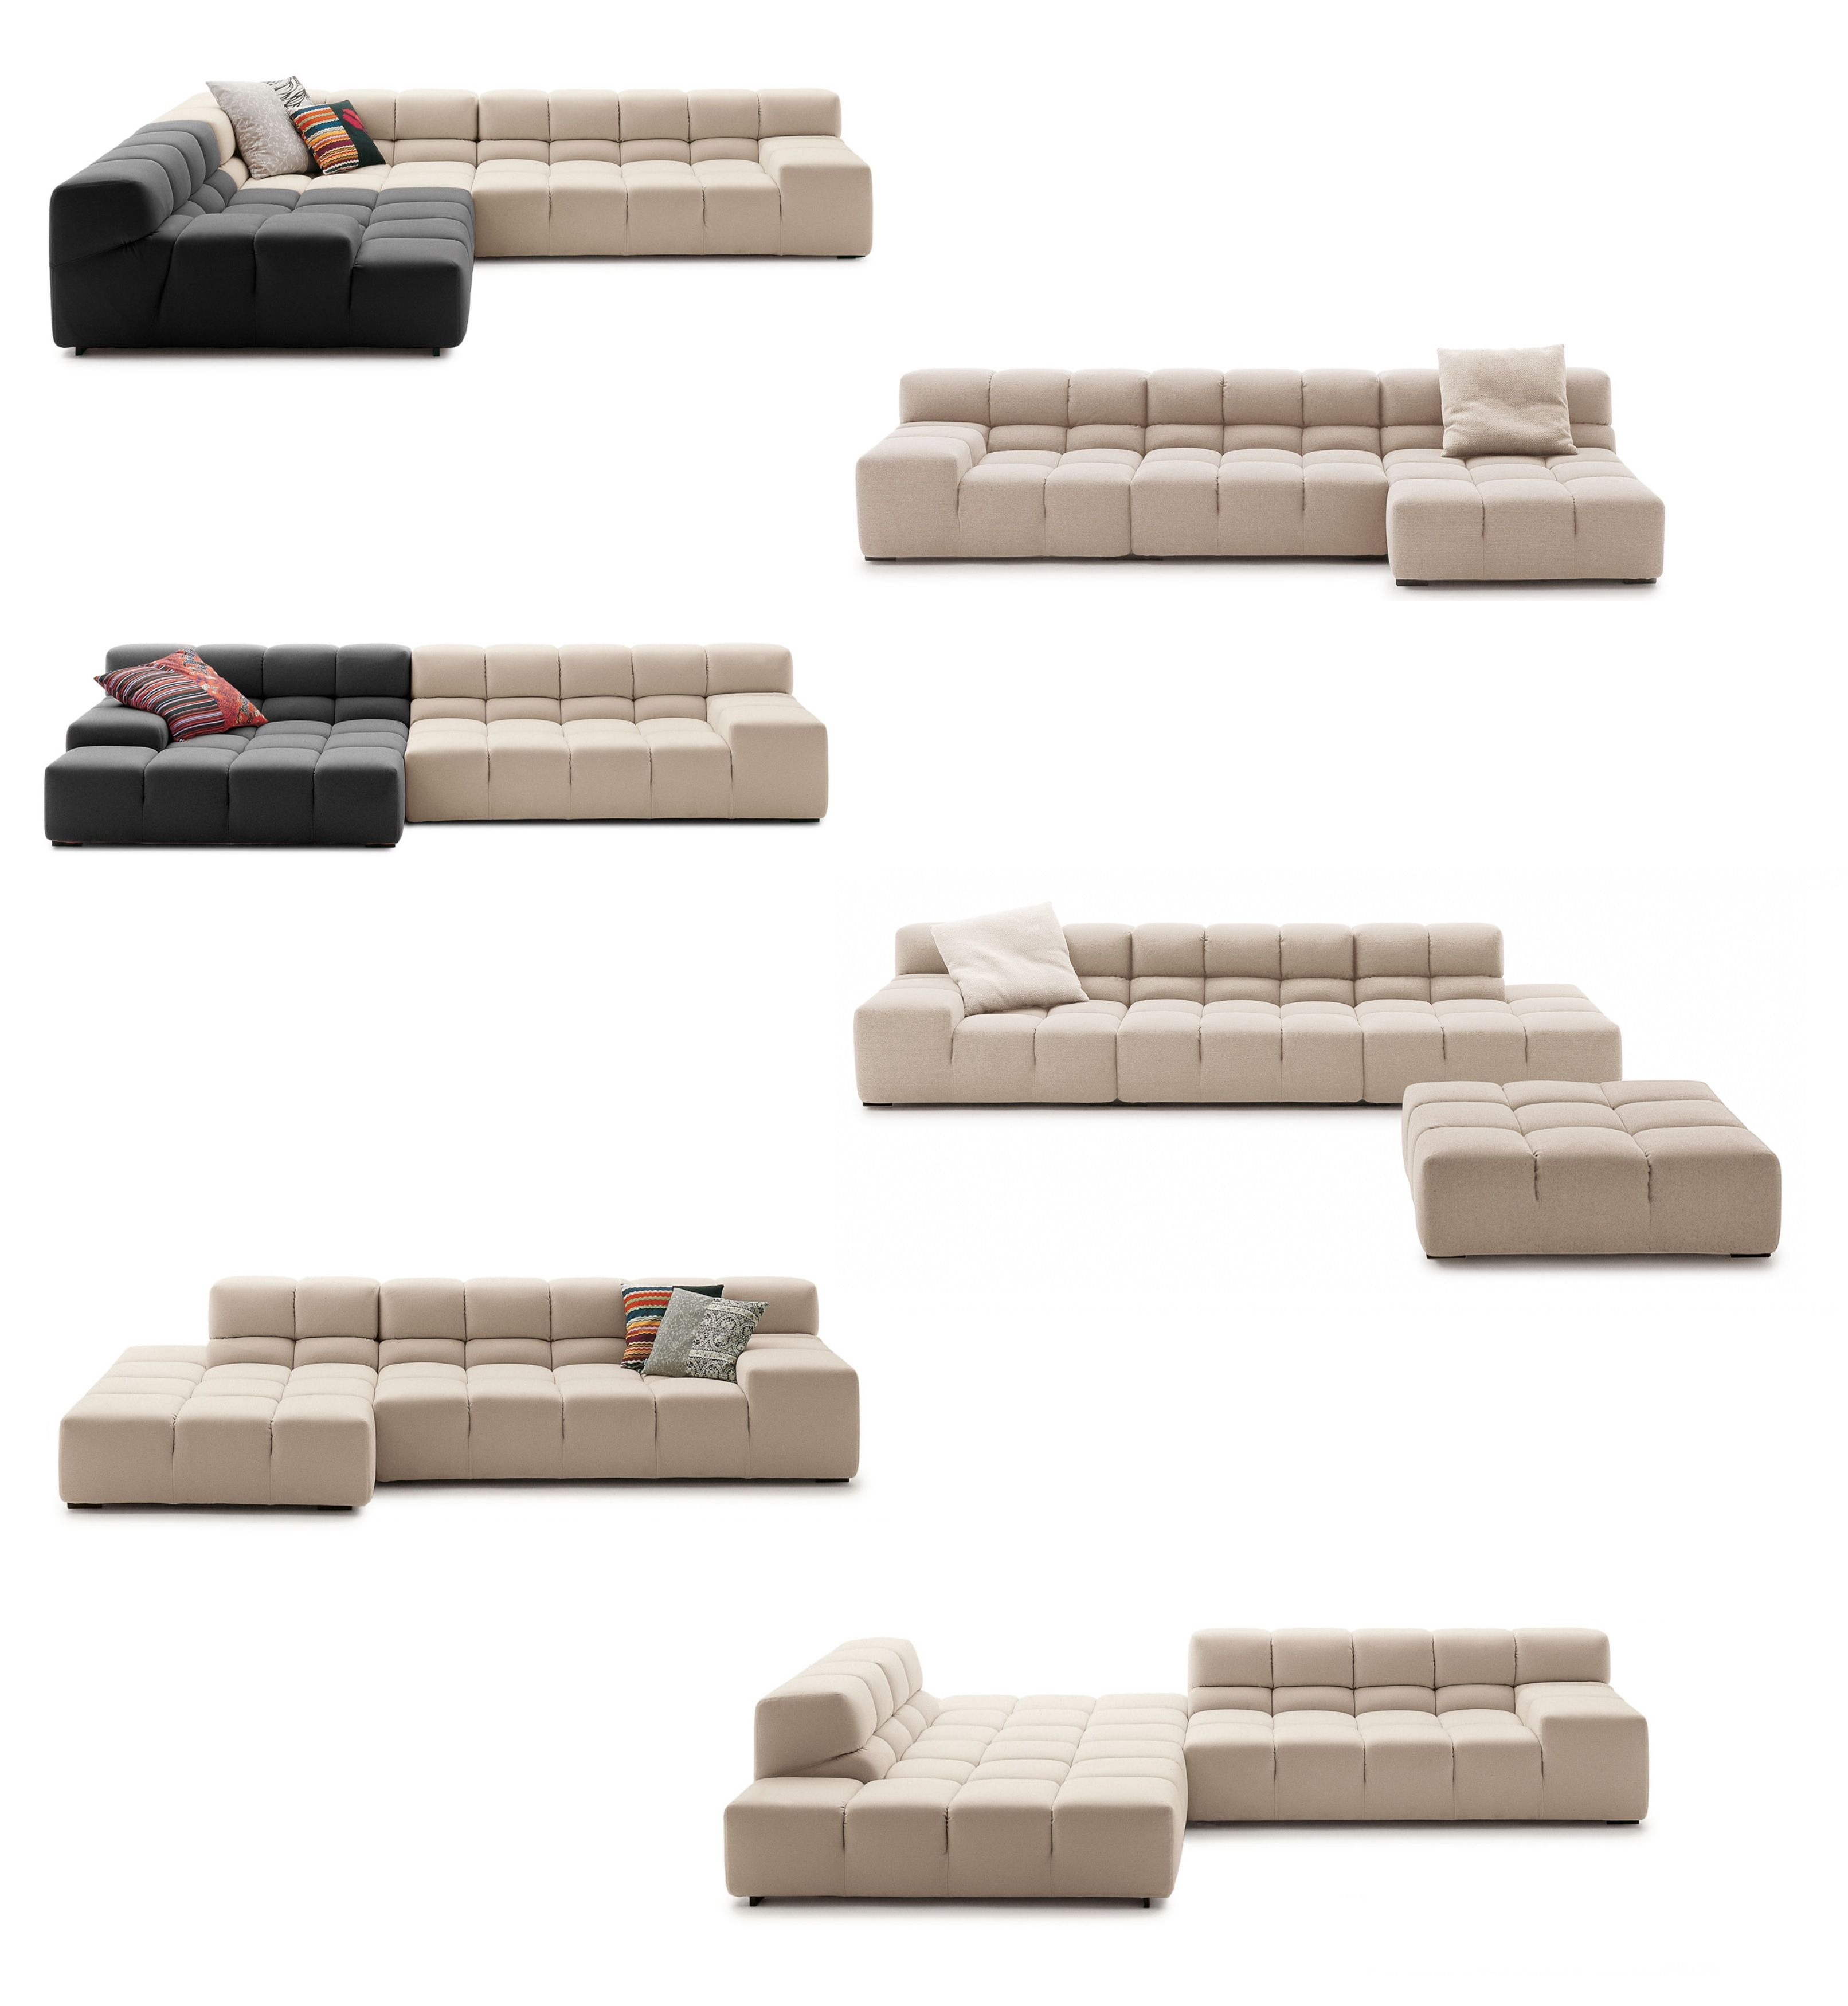 Tufty Time Collection System Modular Sofa Compositions B B Italia Design By Patricia Urquiola Sofa Furniture Modular Furniture Patricia Urquiola